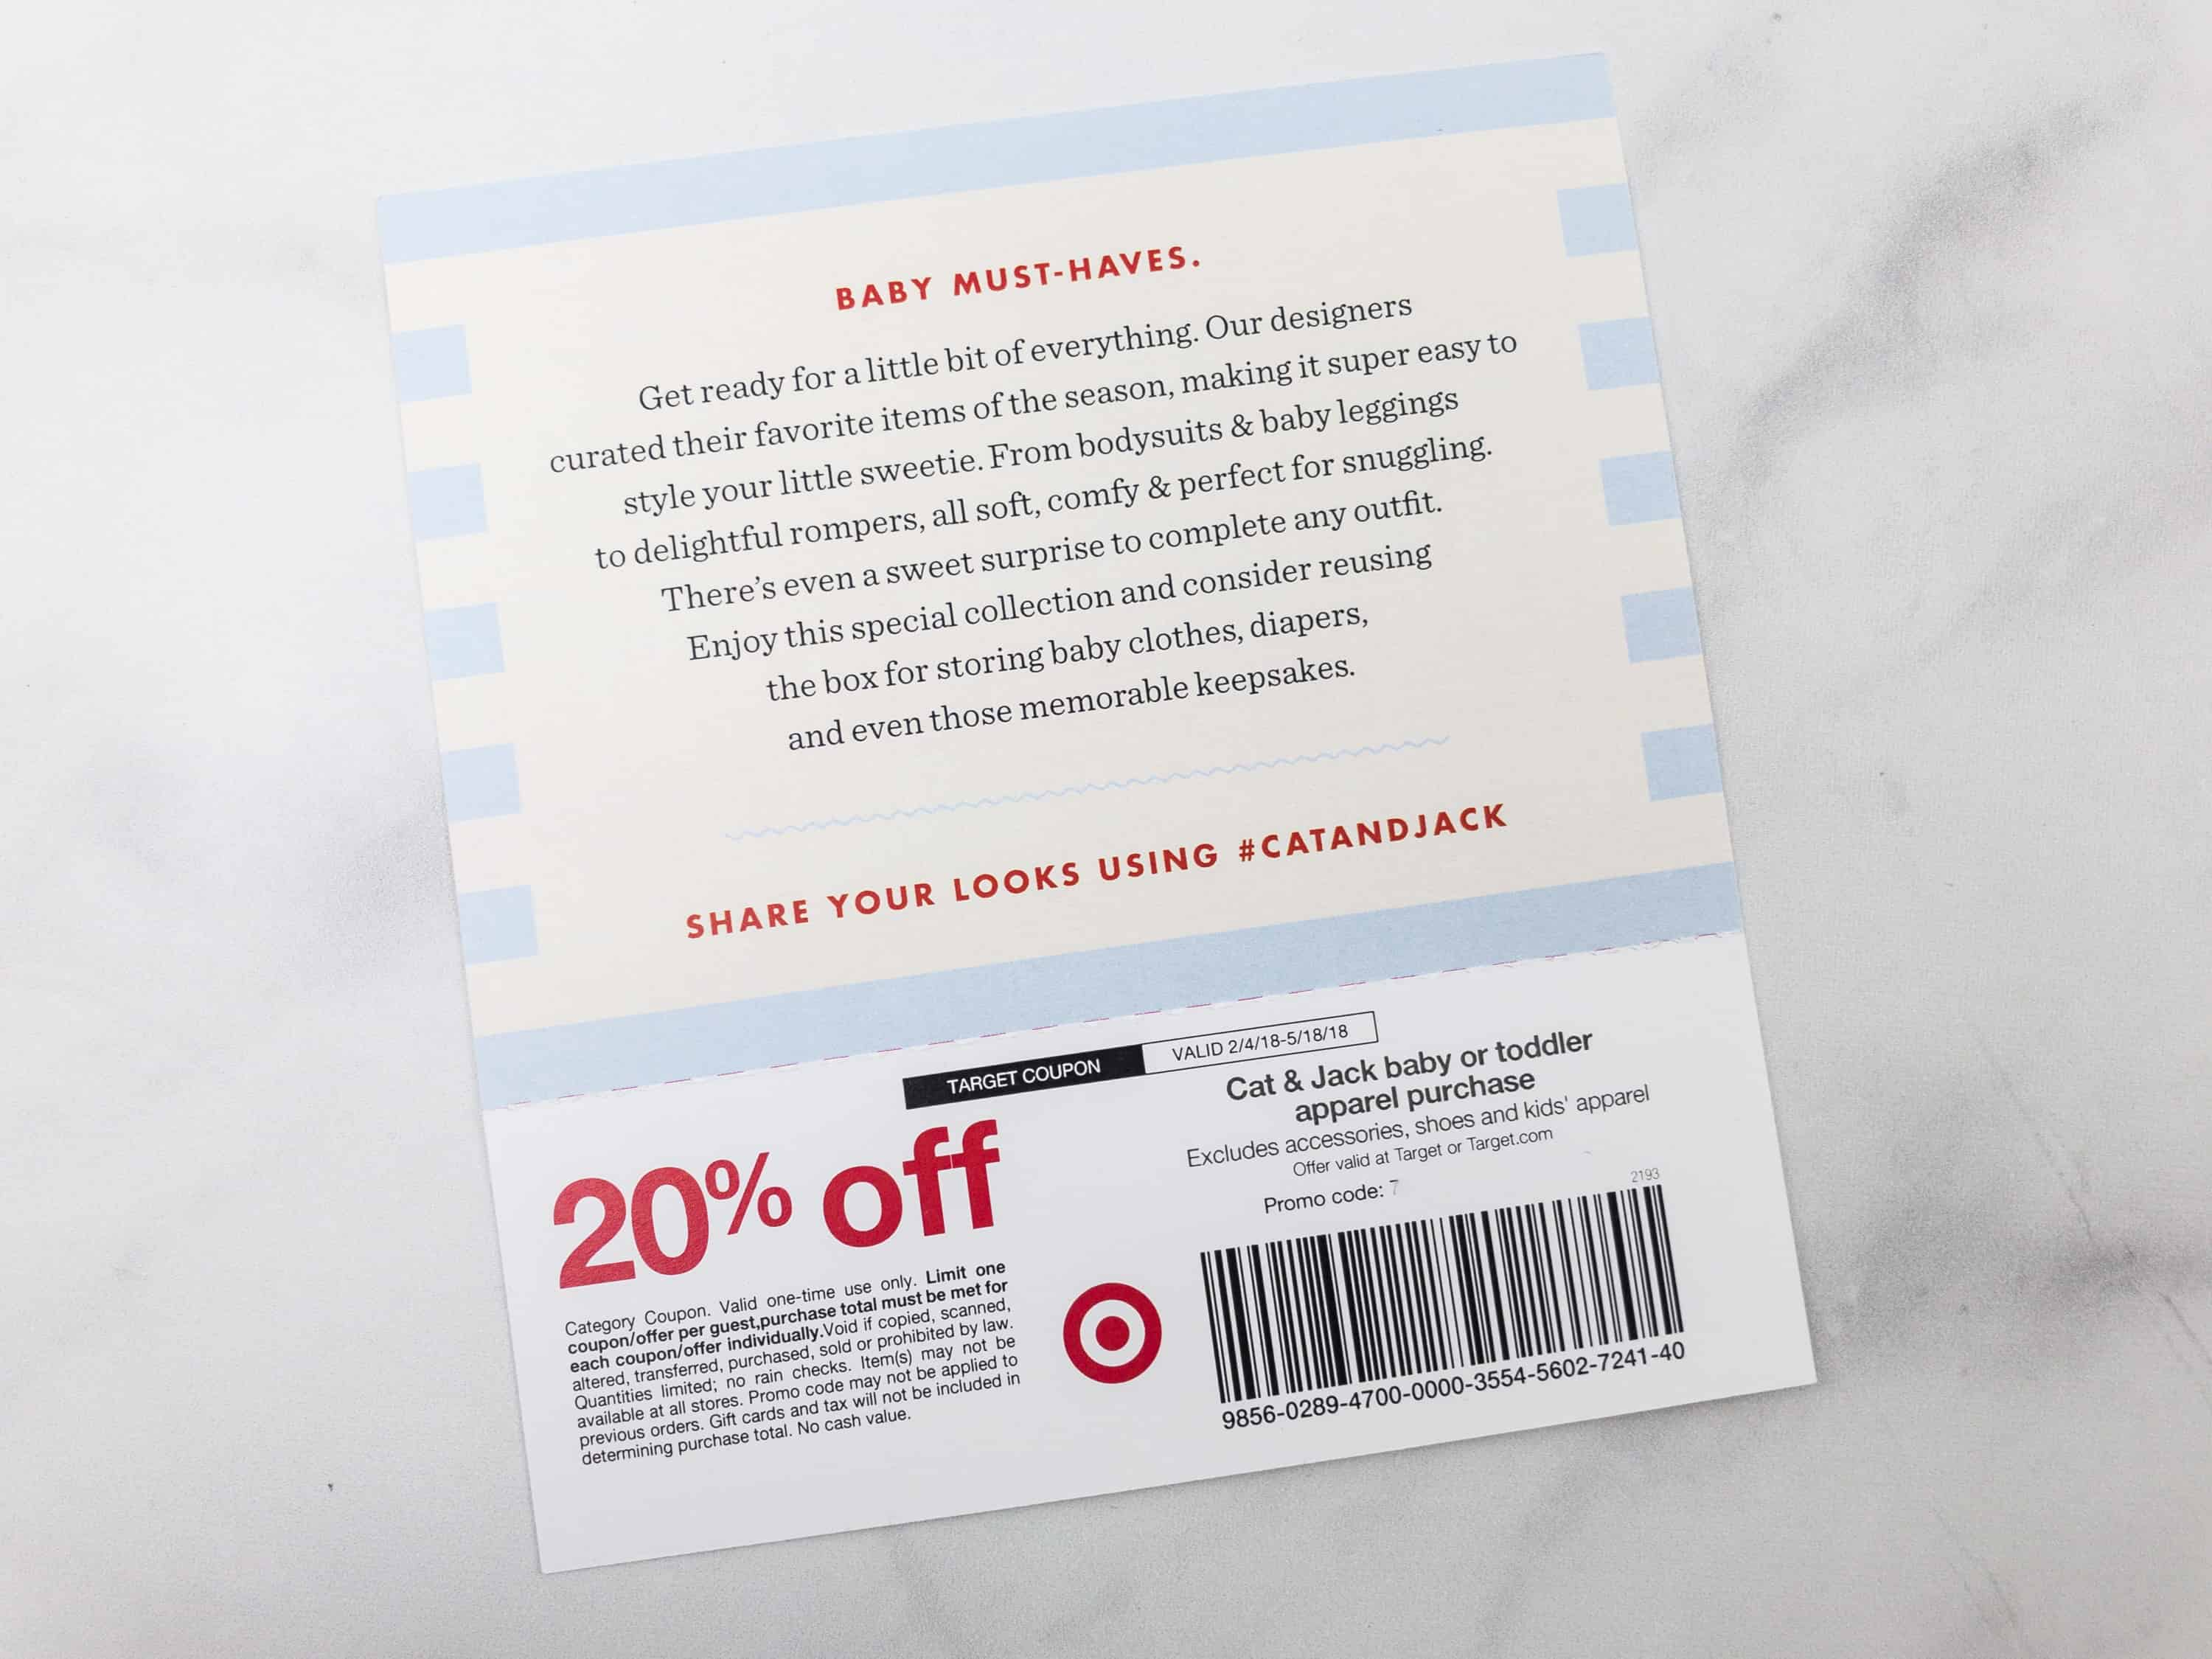 9f07a856 There's even an official hashtag to use. As a bonus, attached to the card  is a coupon for 20% off on all Cat & Jack baby or toddler apparel purchases.